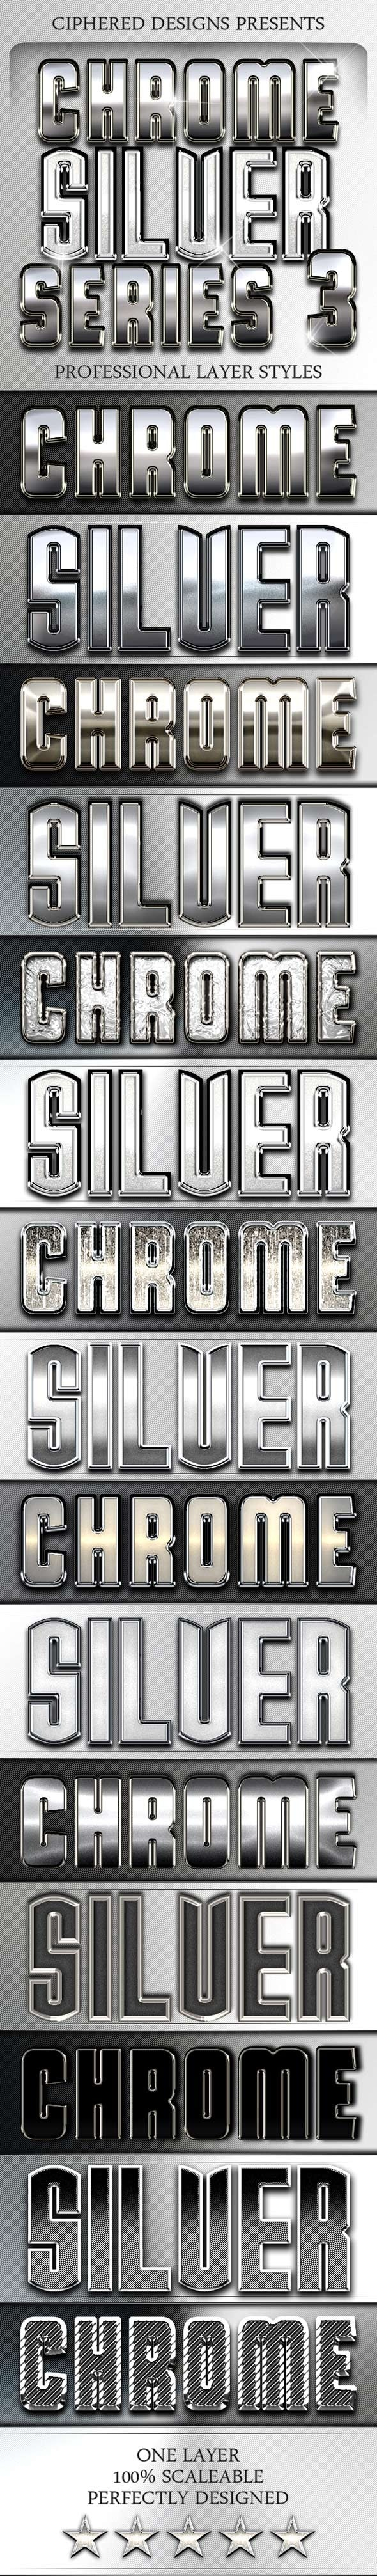 Chrome & Silver Series III - Professional Styles - Text Effects Styles